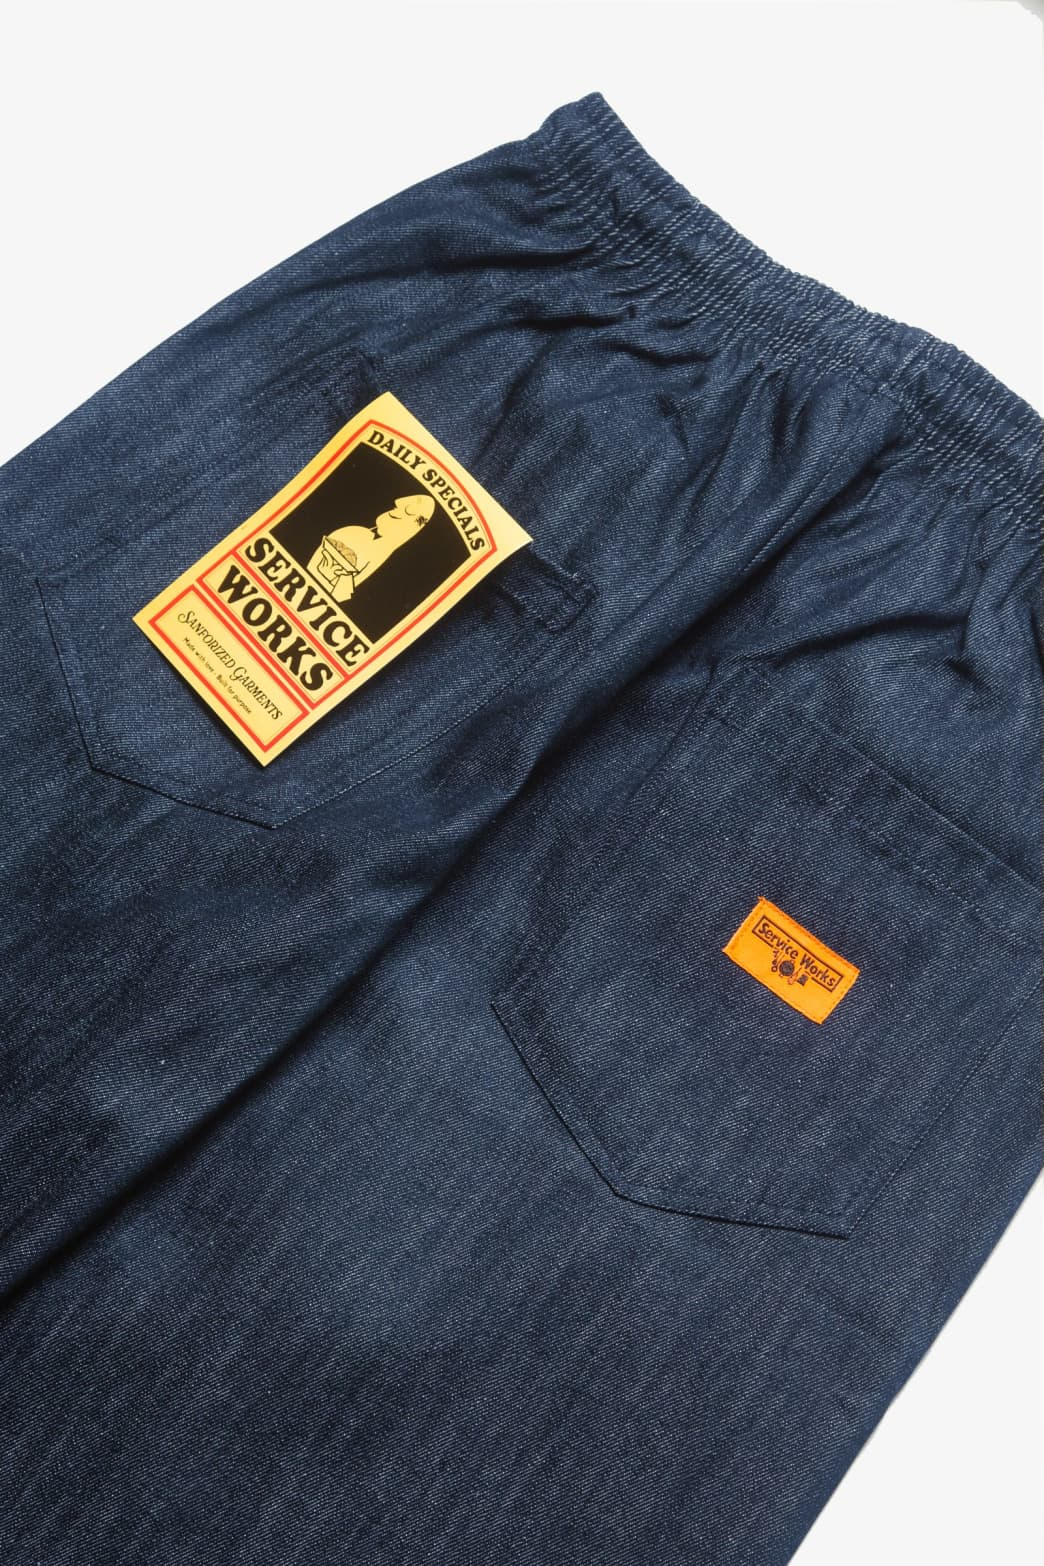 Service Works - Classic Chef Pants - Indigo Denim   Trousers by Service Works 2